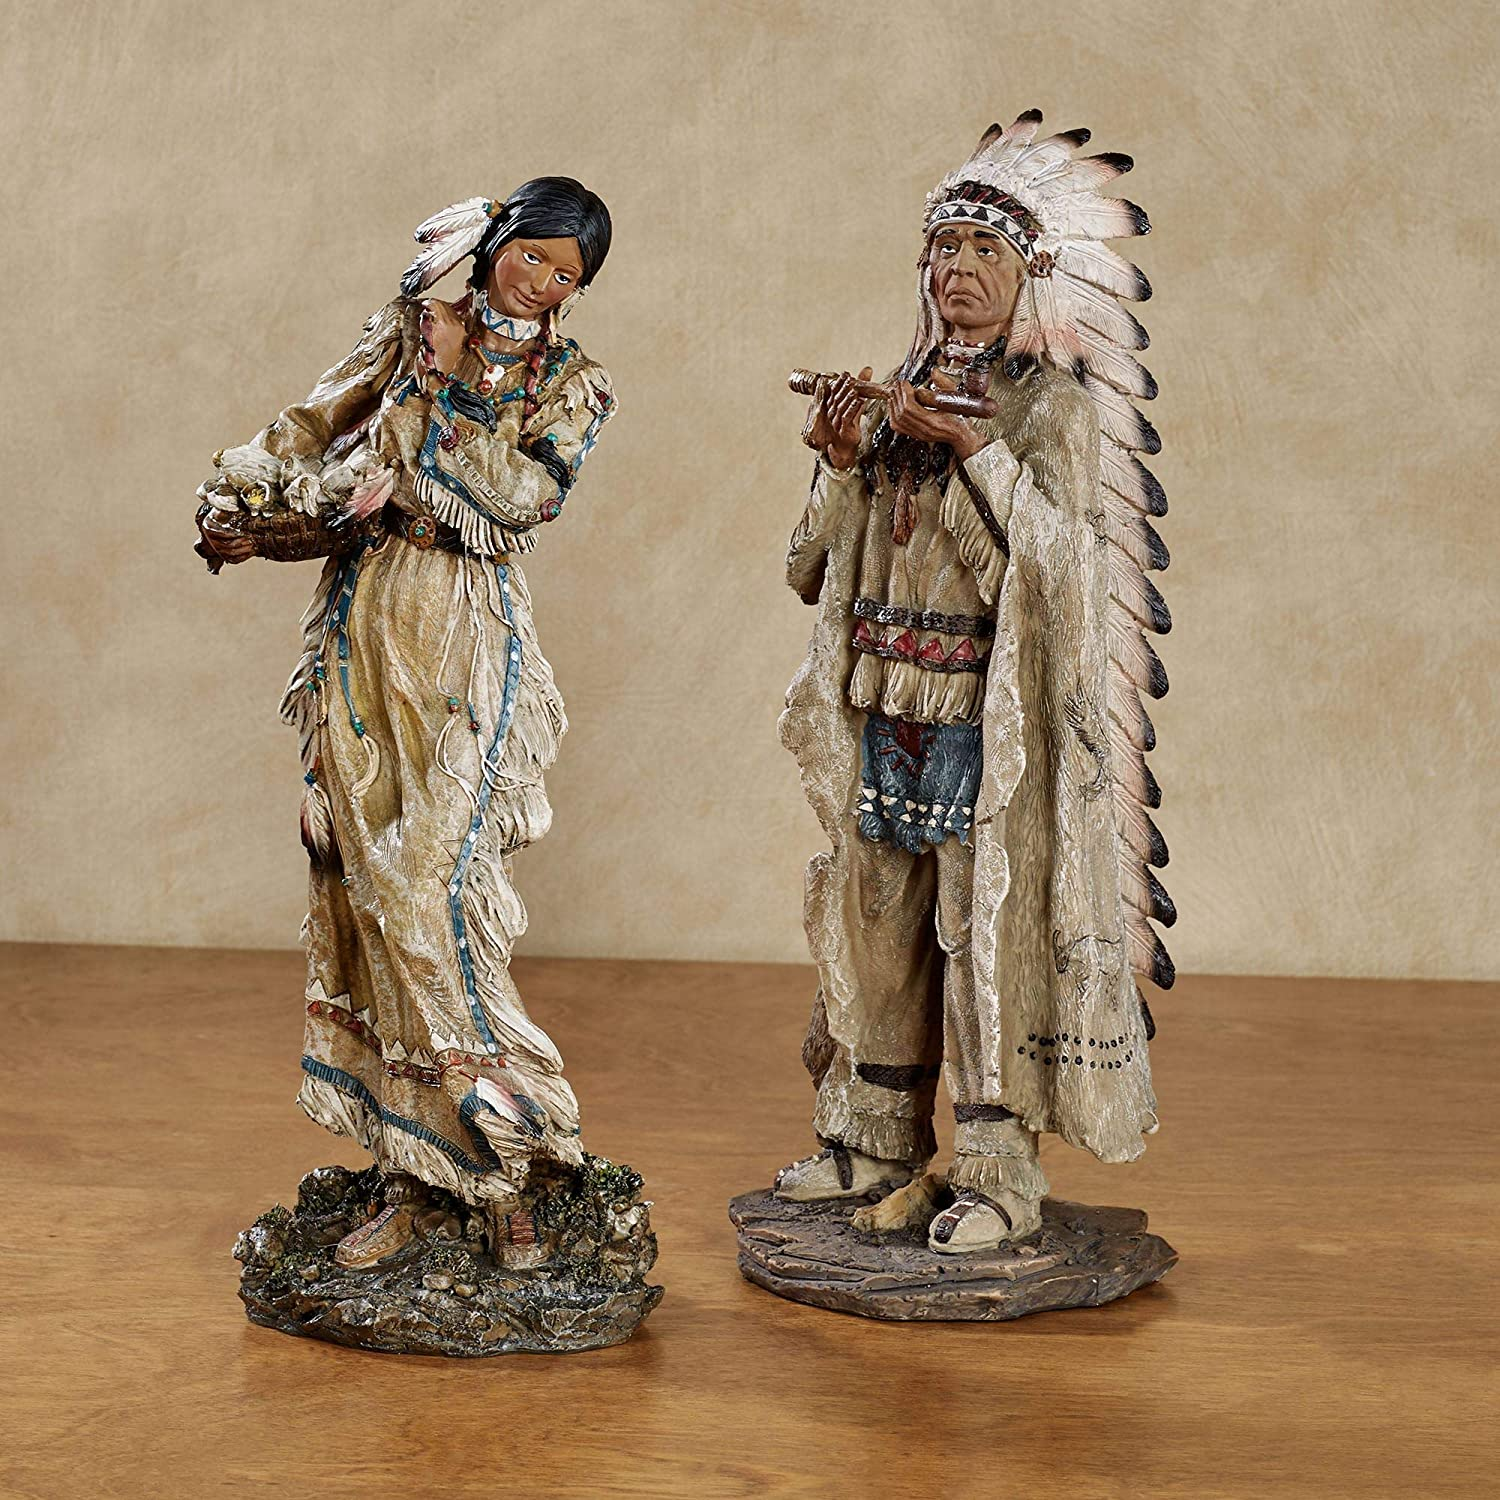 Majestic Tradition Native American Figurines Earth Tones Year-end annual account S Ranking TOP19 Multi